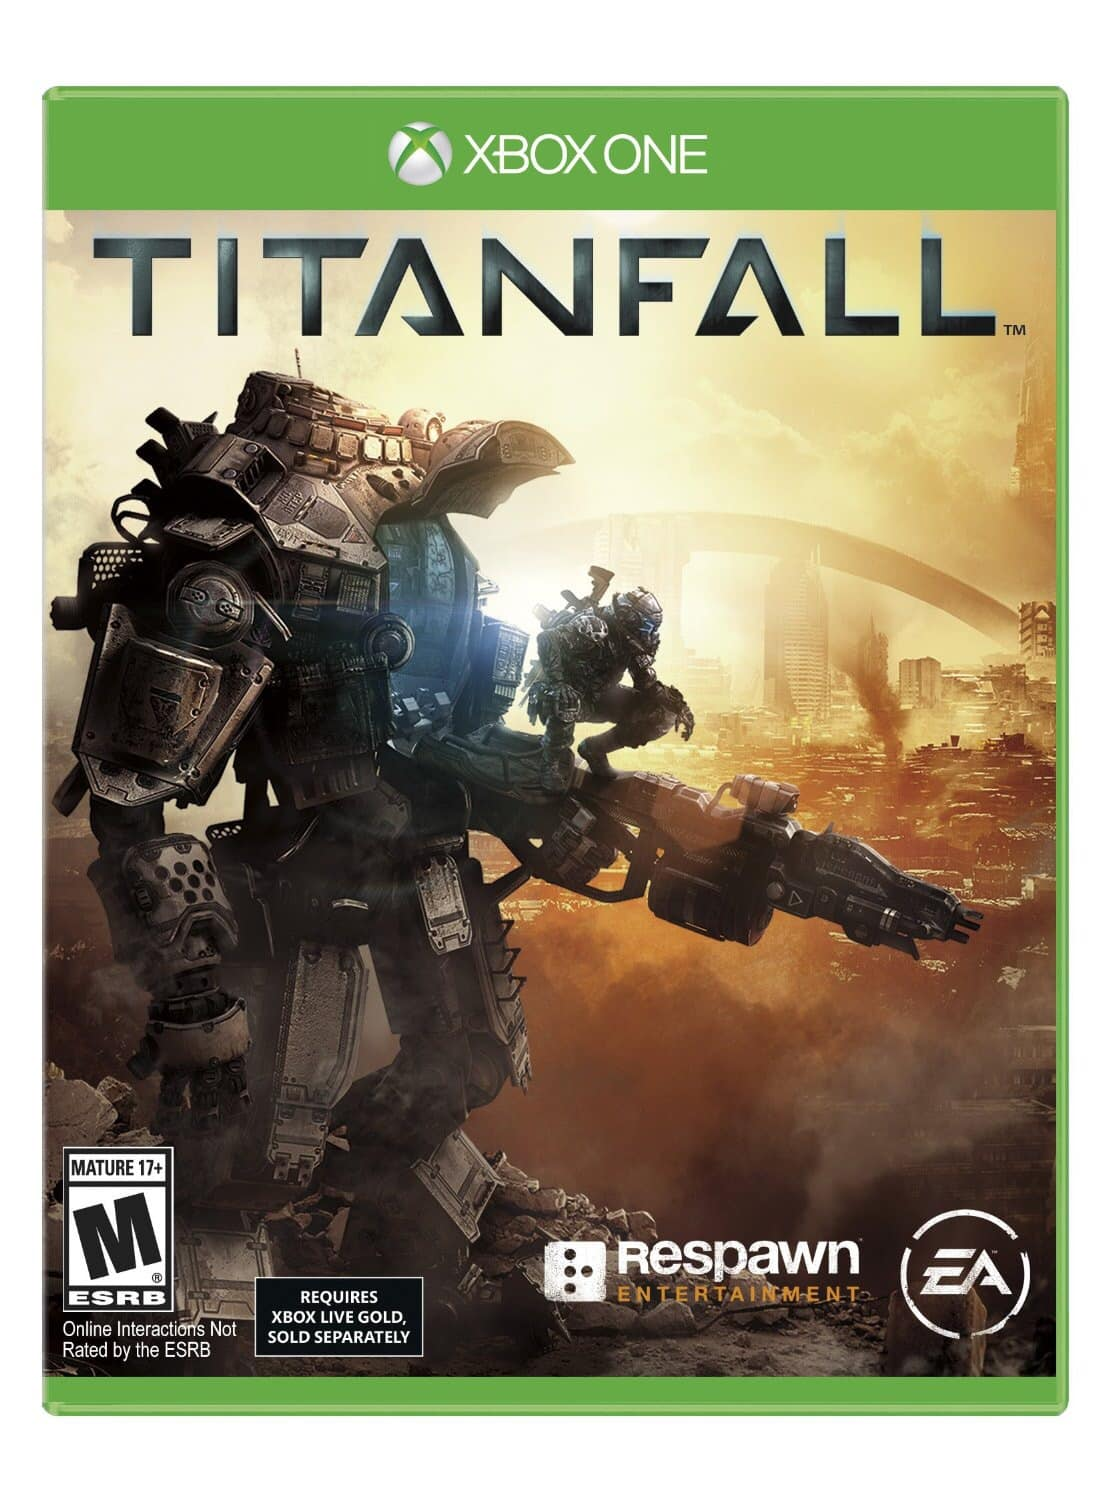 Titanfall (Xbox One) - $12.99 ($10.39 w/ GCU) @ Best Buy (Deal of the Day)